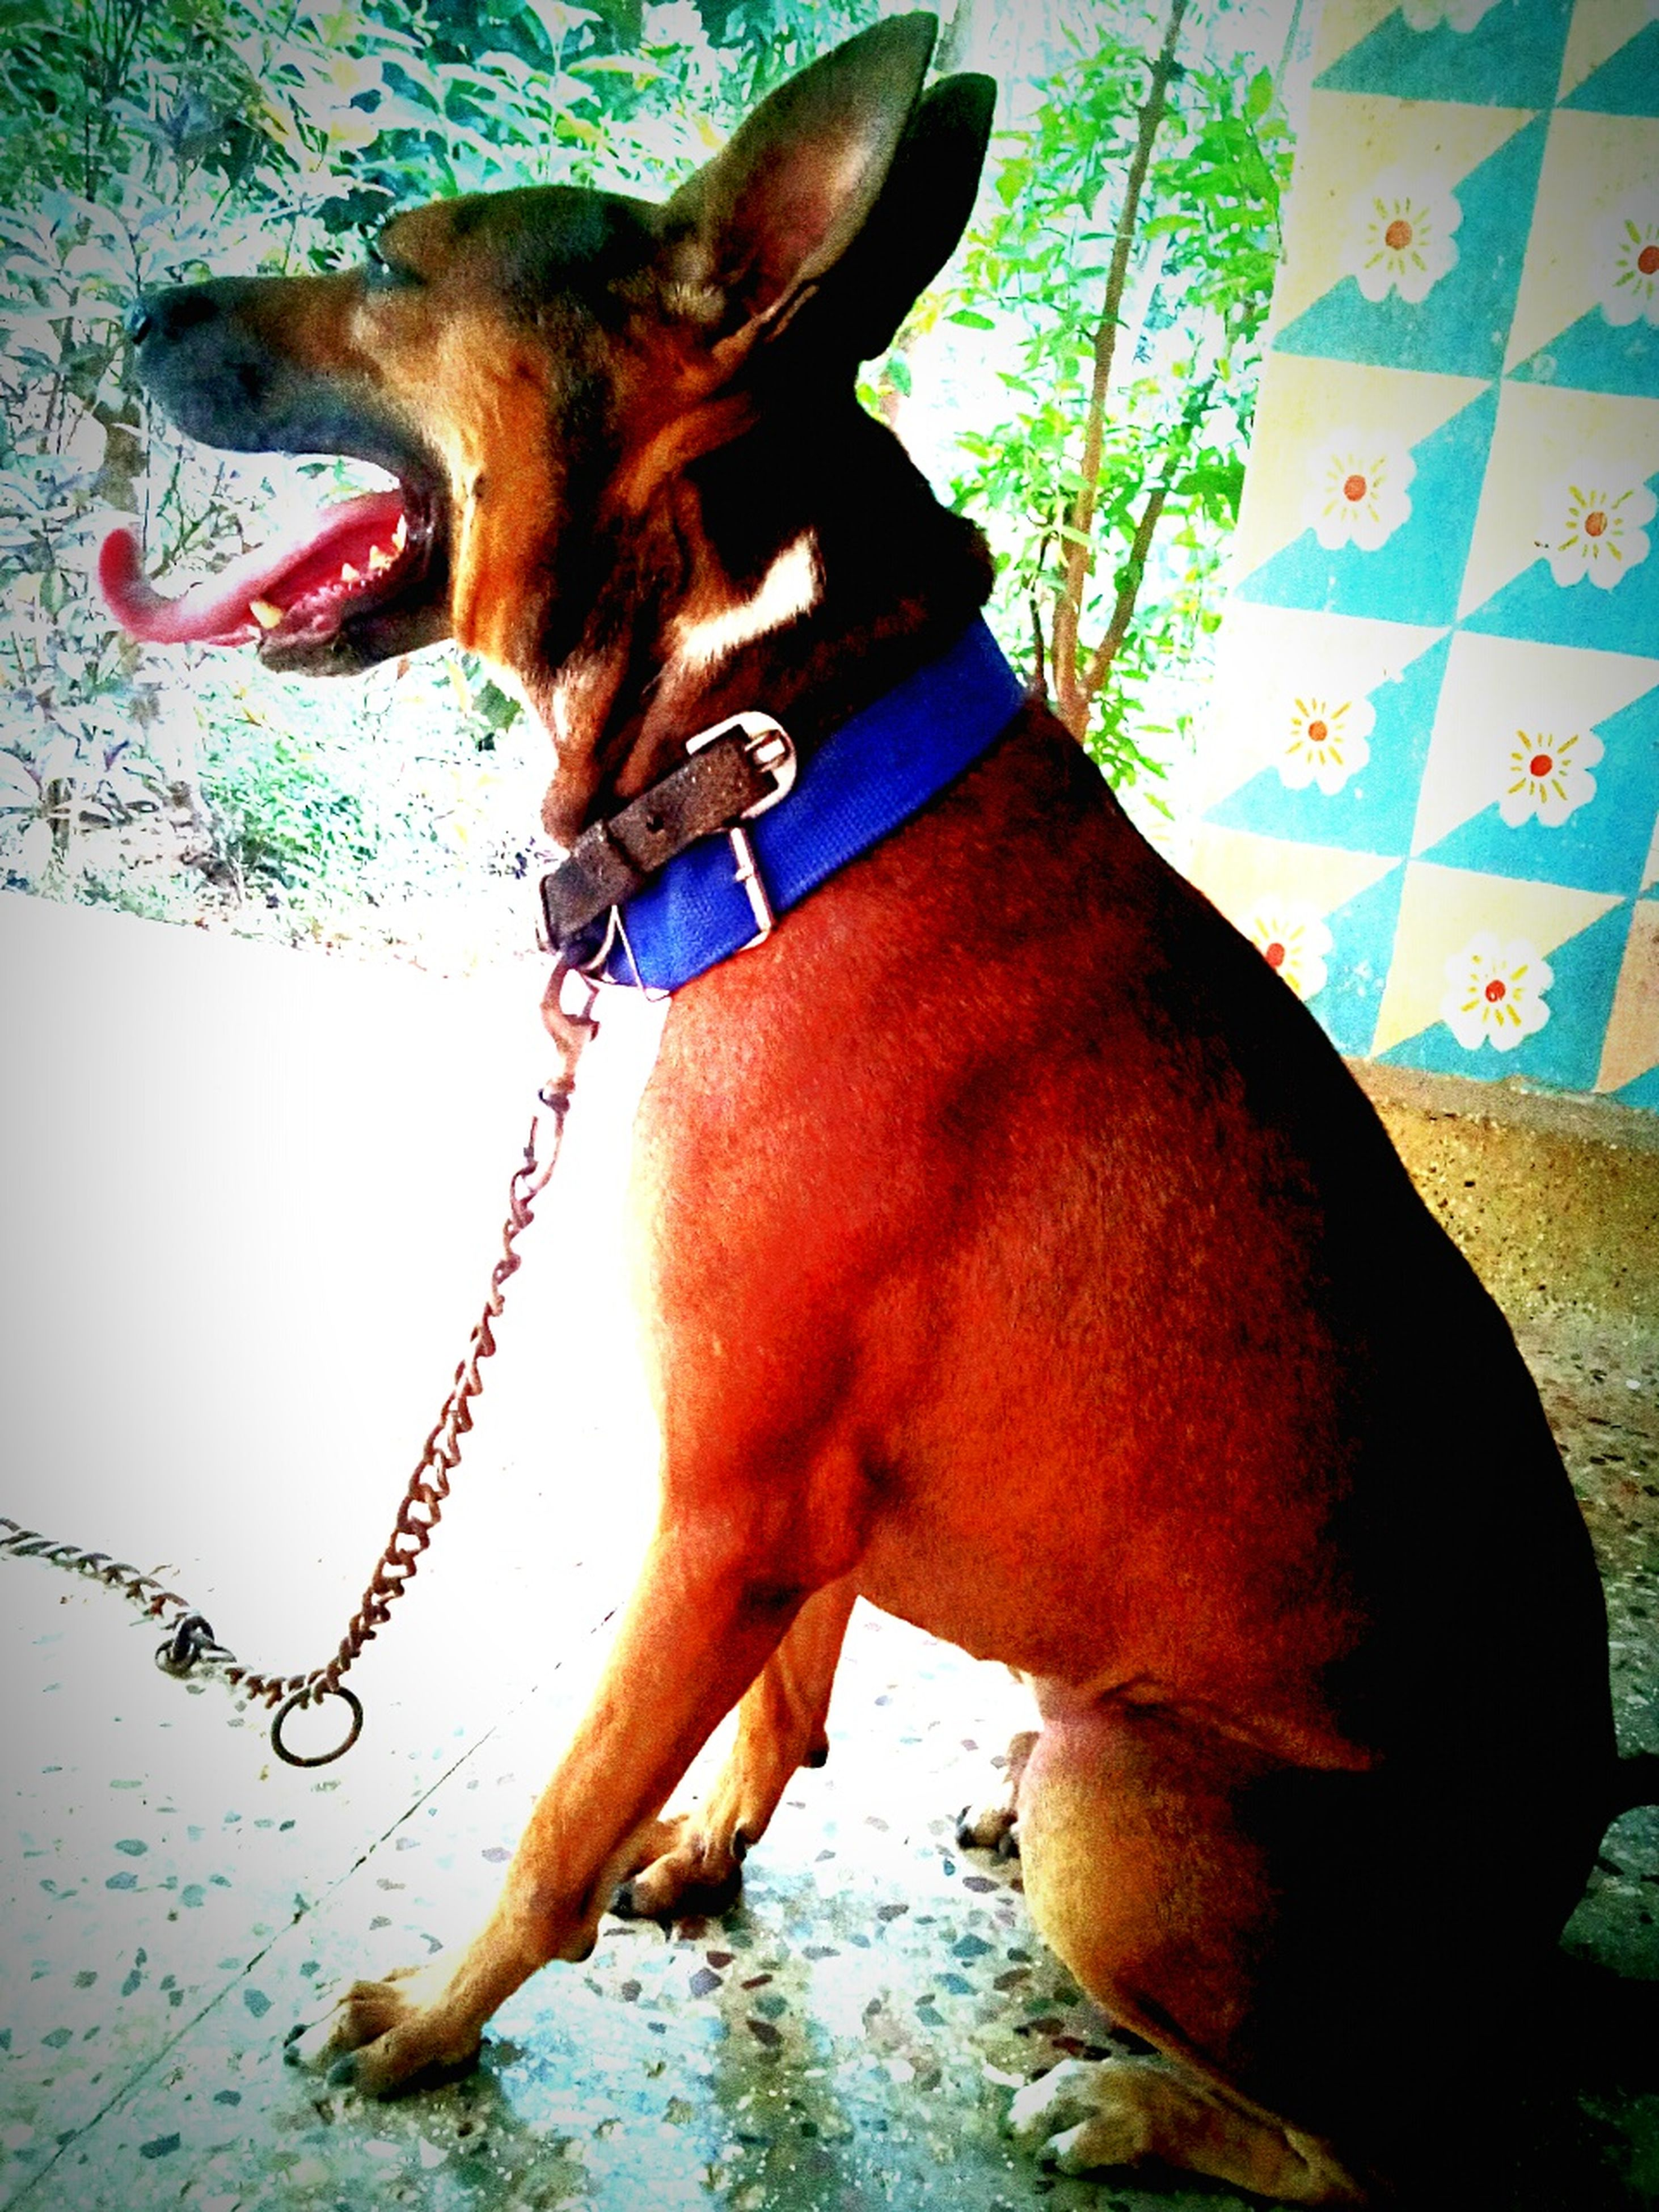 domestic animals, animal themes, mammal, one animal, pets, dog, horse, brown, working animal, standing, animal head, pet collar, one person, livestock, part of, day, animal body part, outdoors, side view, pet leash